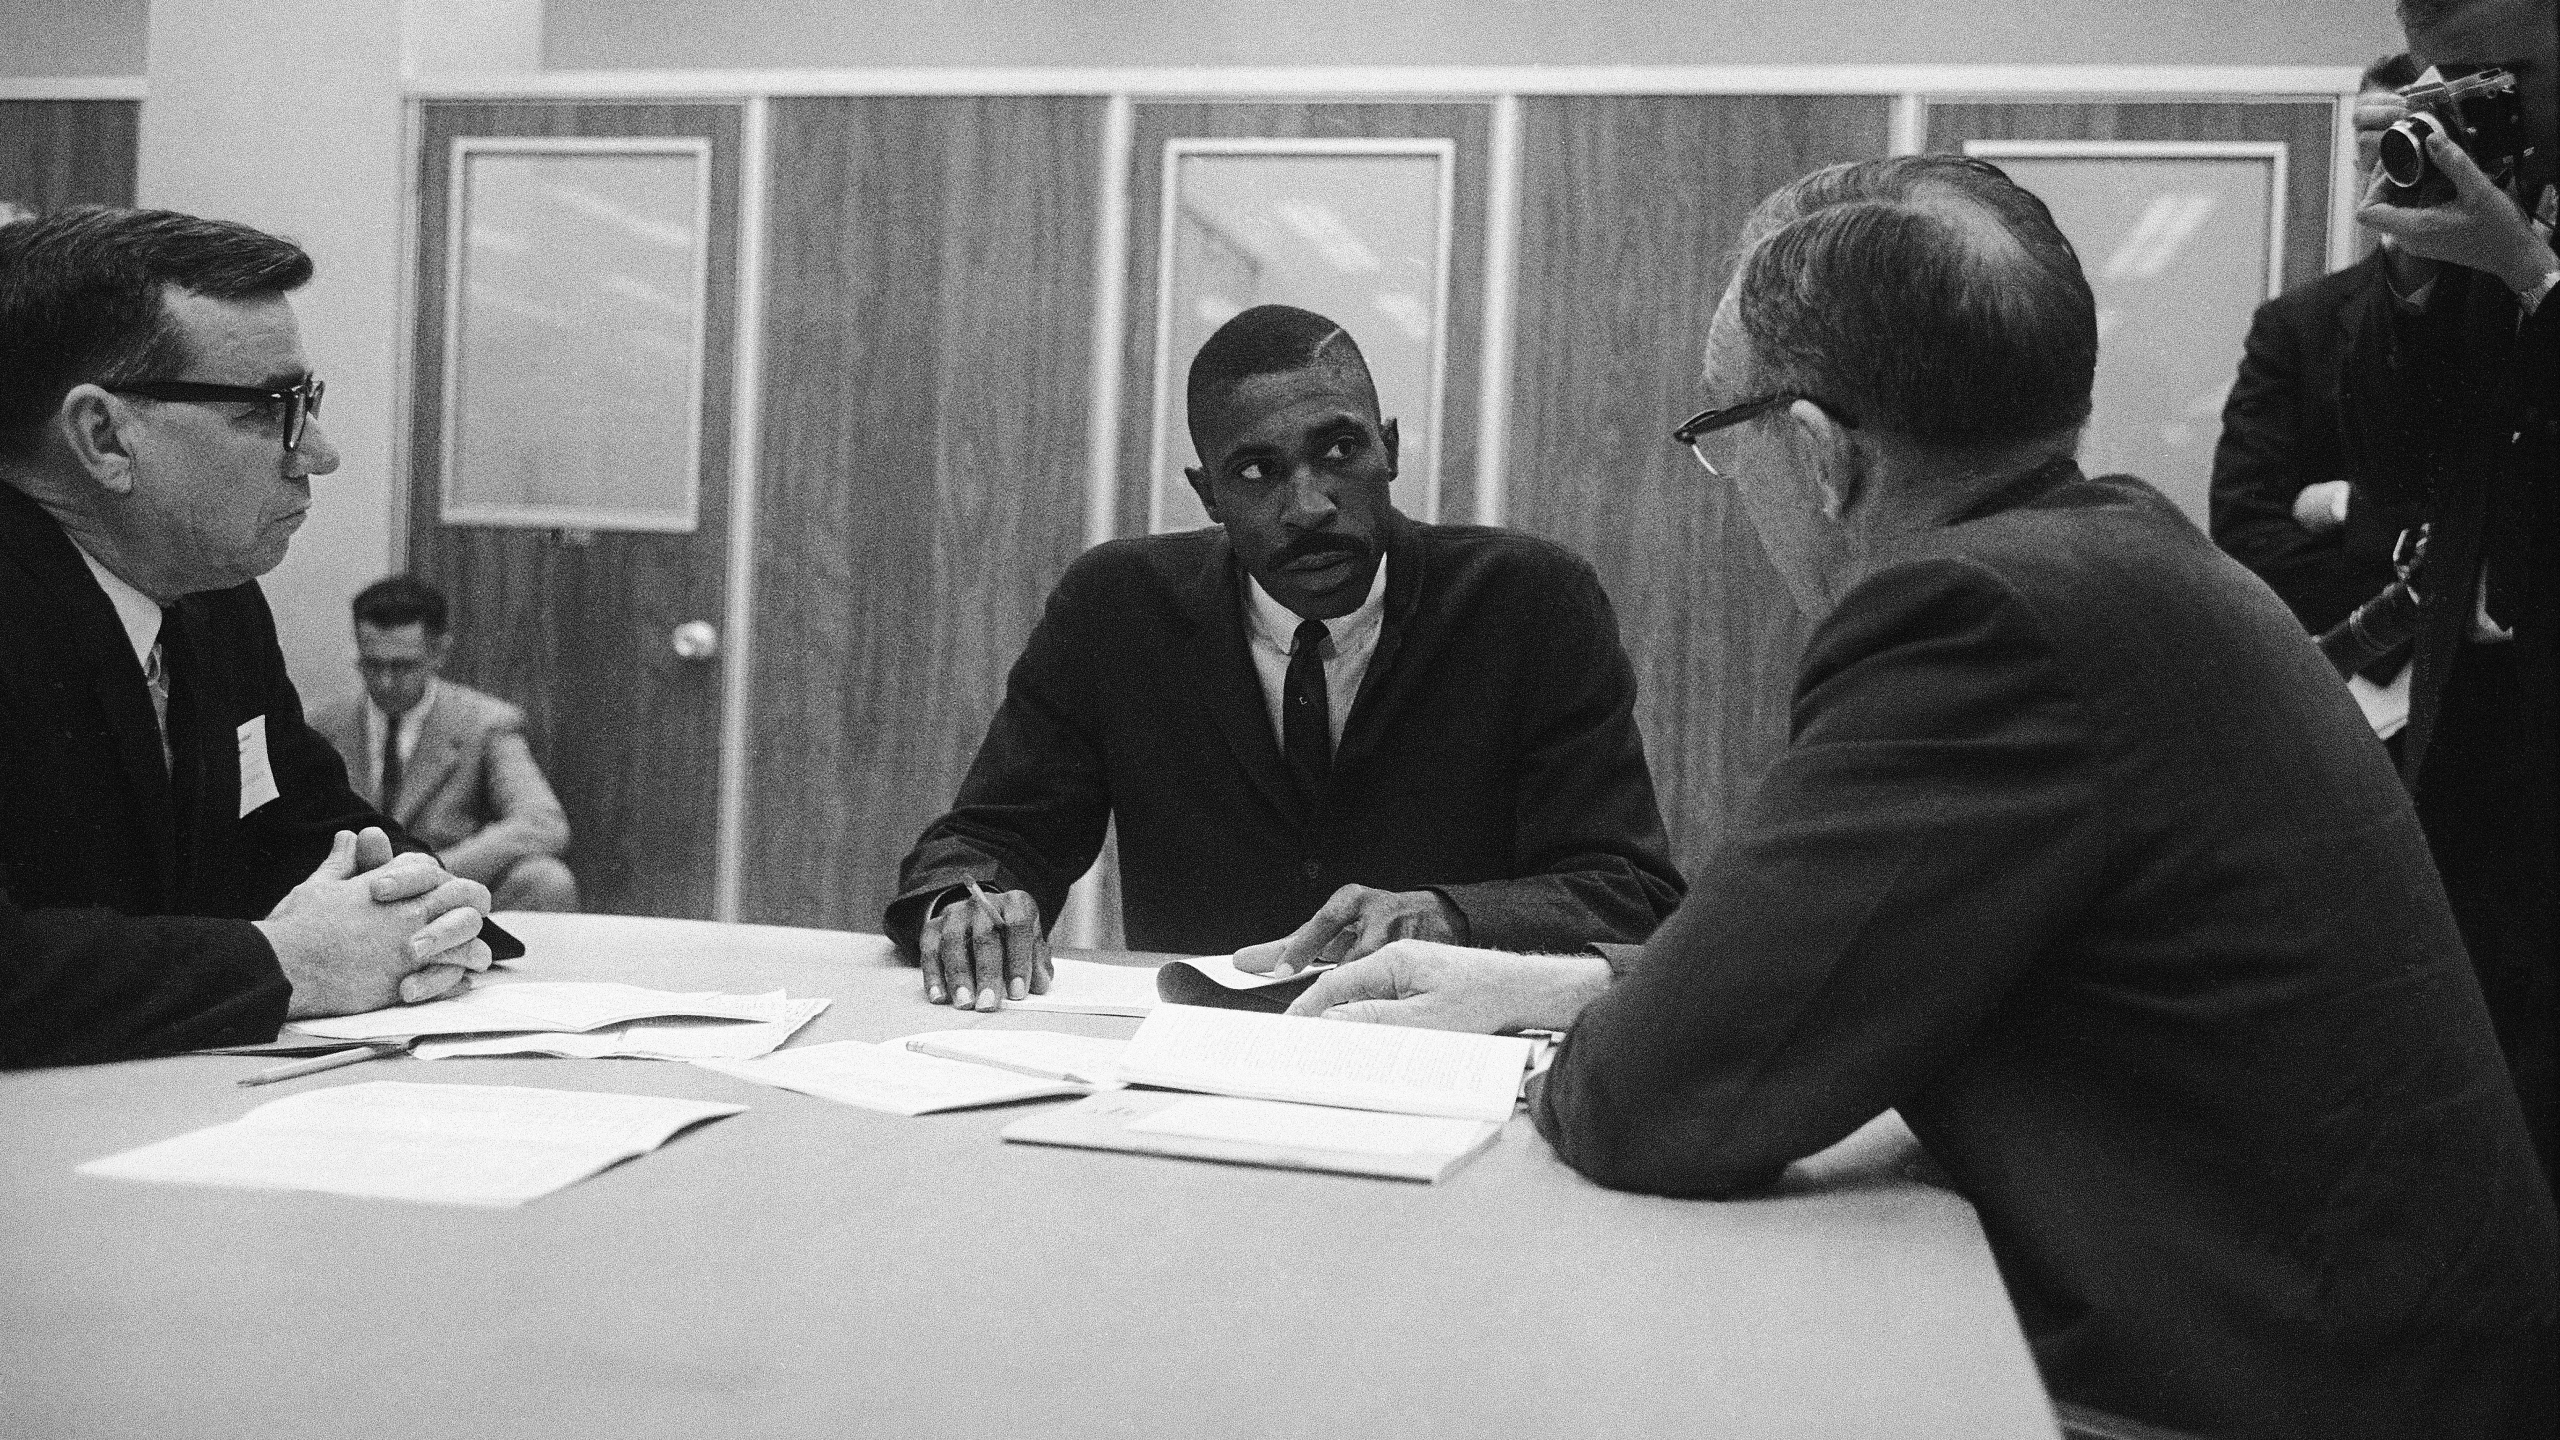 Harold A. Franklin, First Black Student to Attend Auburn University, Dies at 88